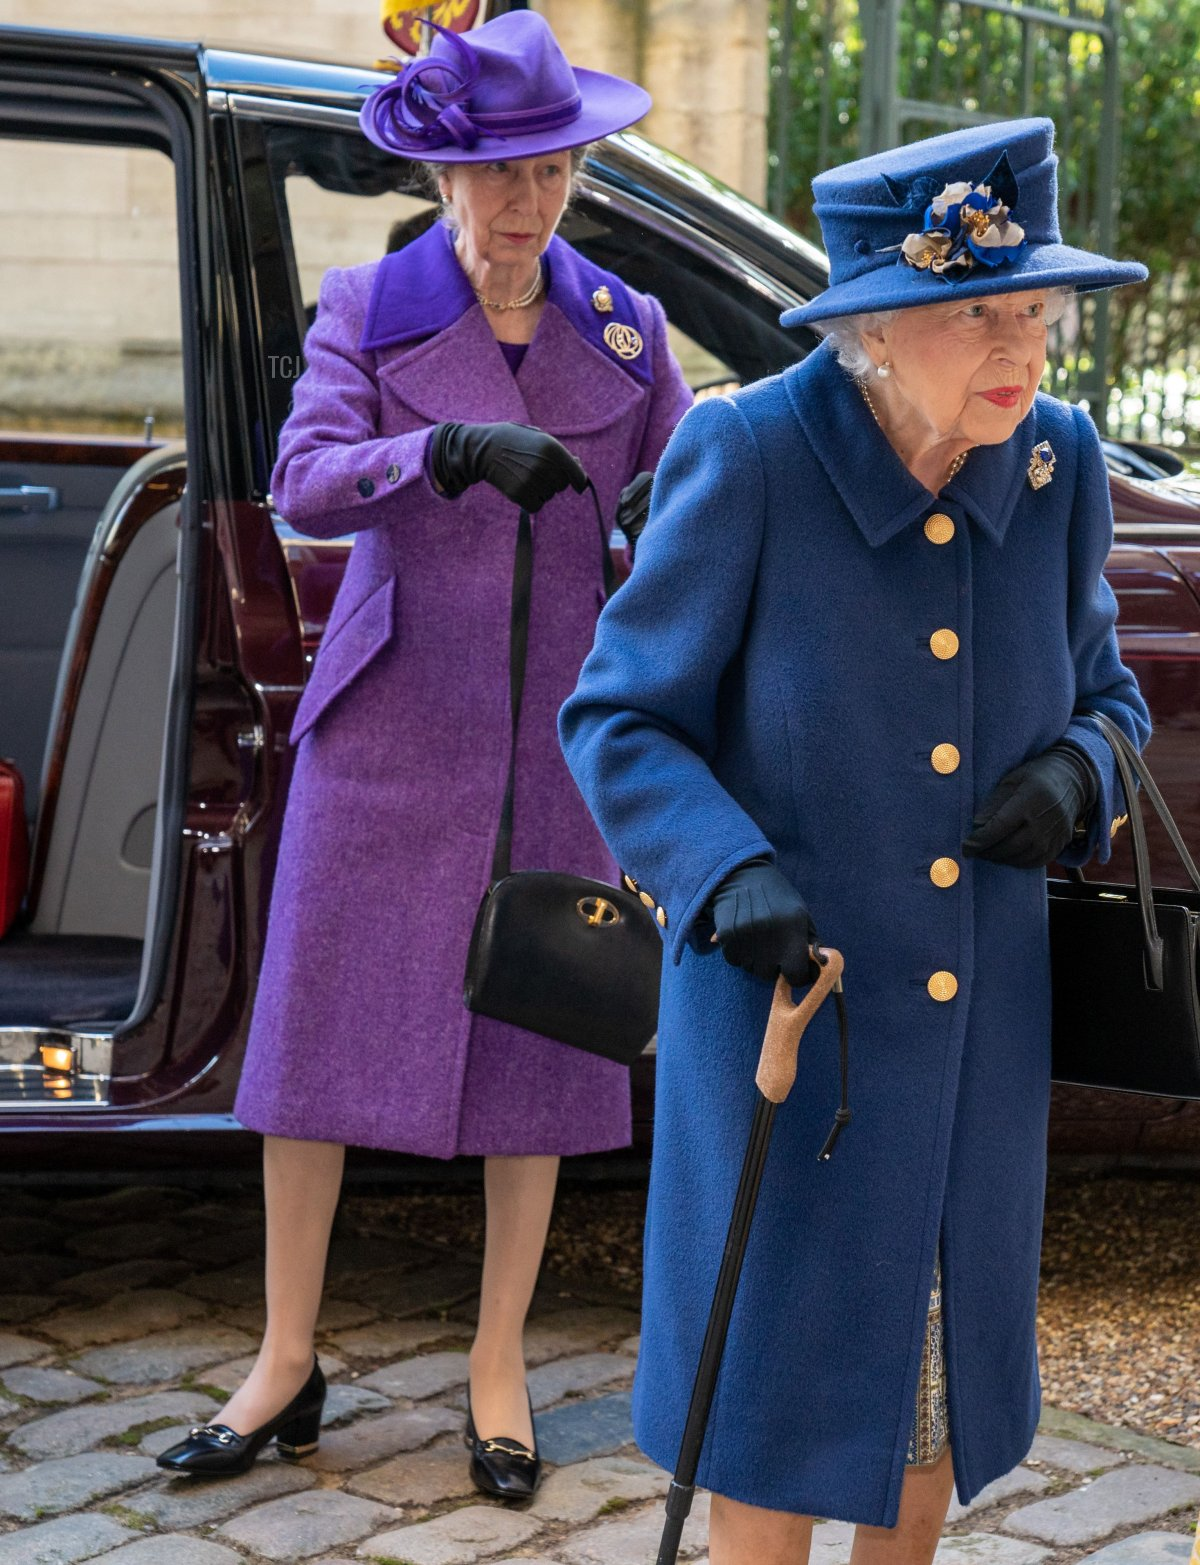 Britain's Queen Elizabeth II (R) and Britain's Princess Anne, Princess Royal (L) arrive to attend a Service of Thanksgiving to mark the Centenary of the Royal British Legion at Westminster Abbey in London on October 12, 2021